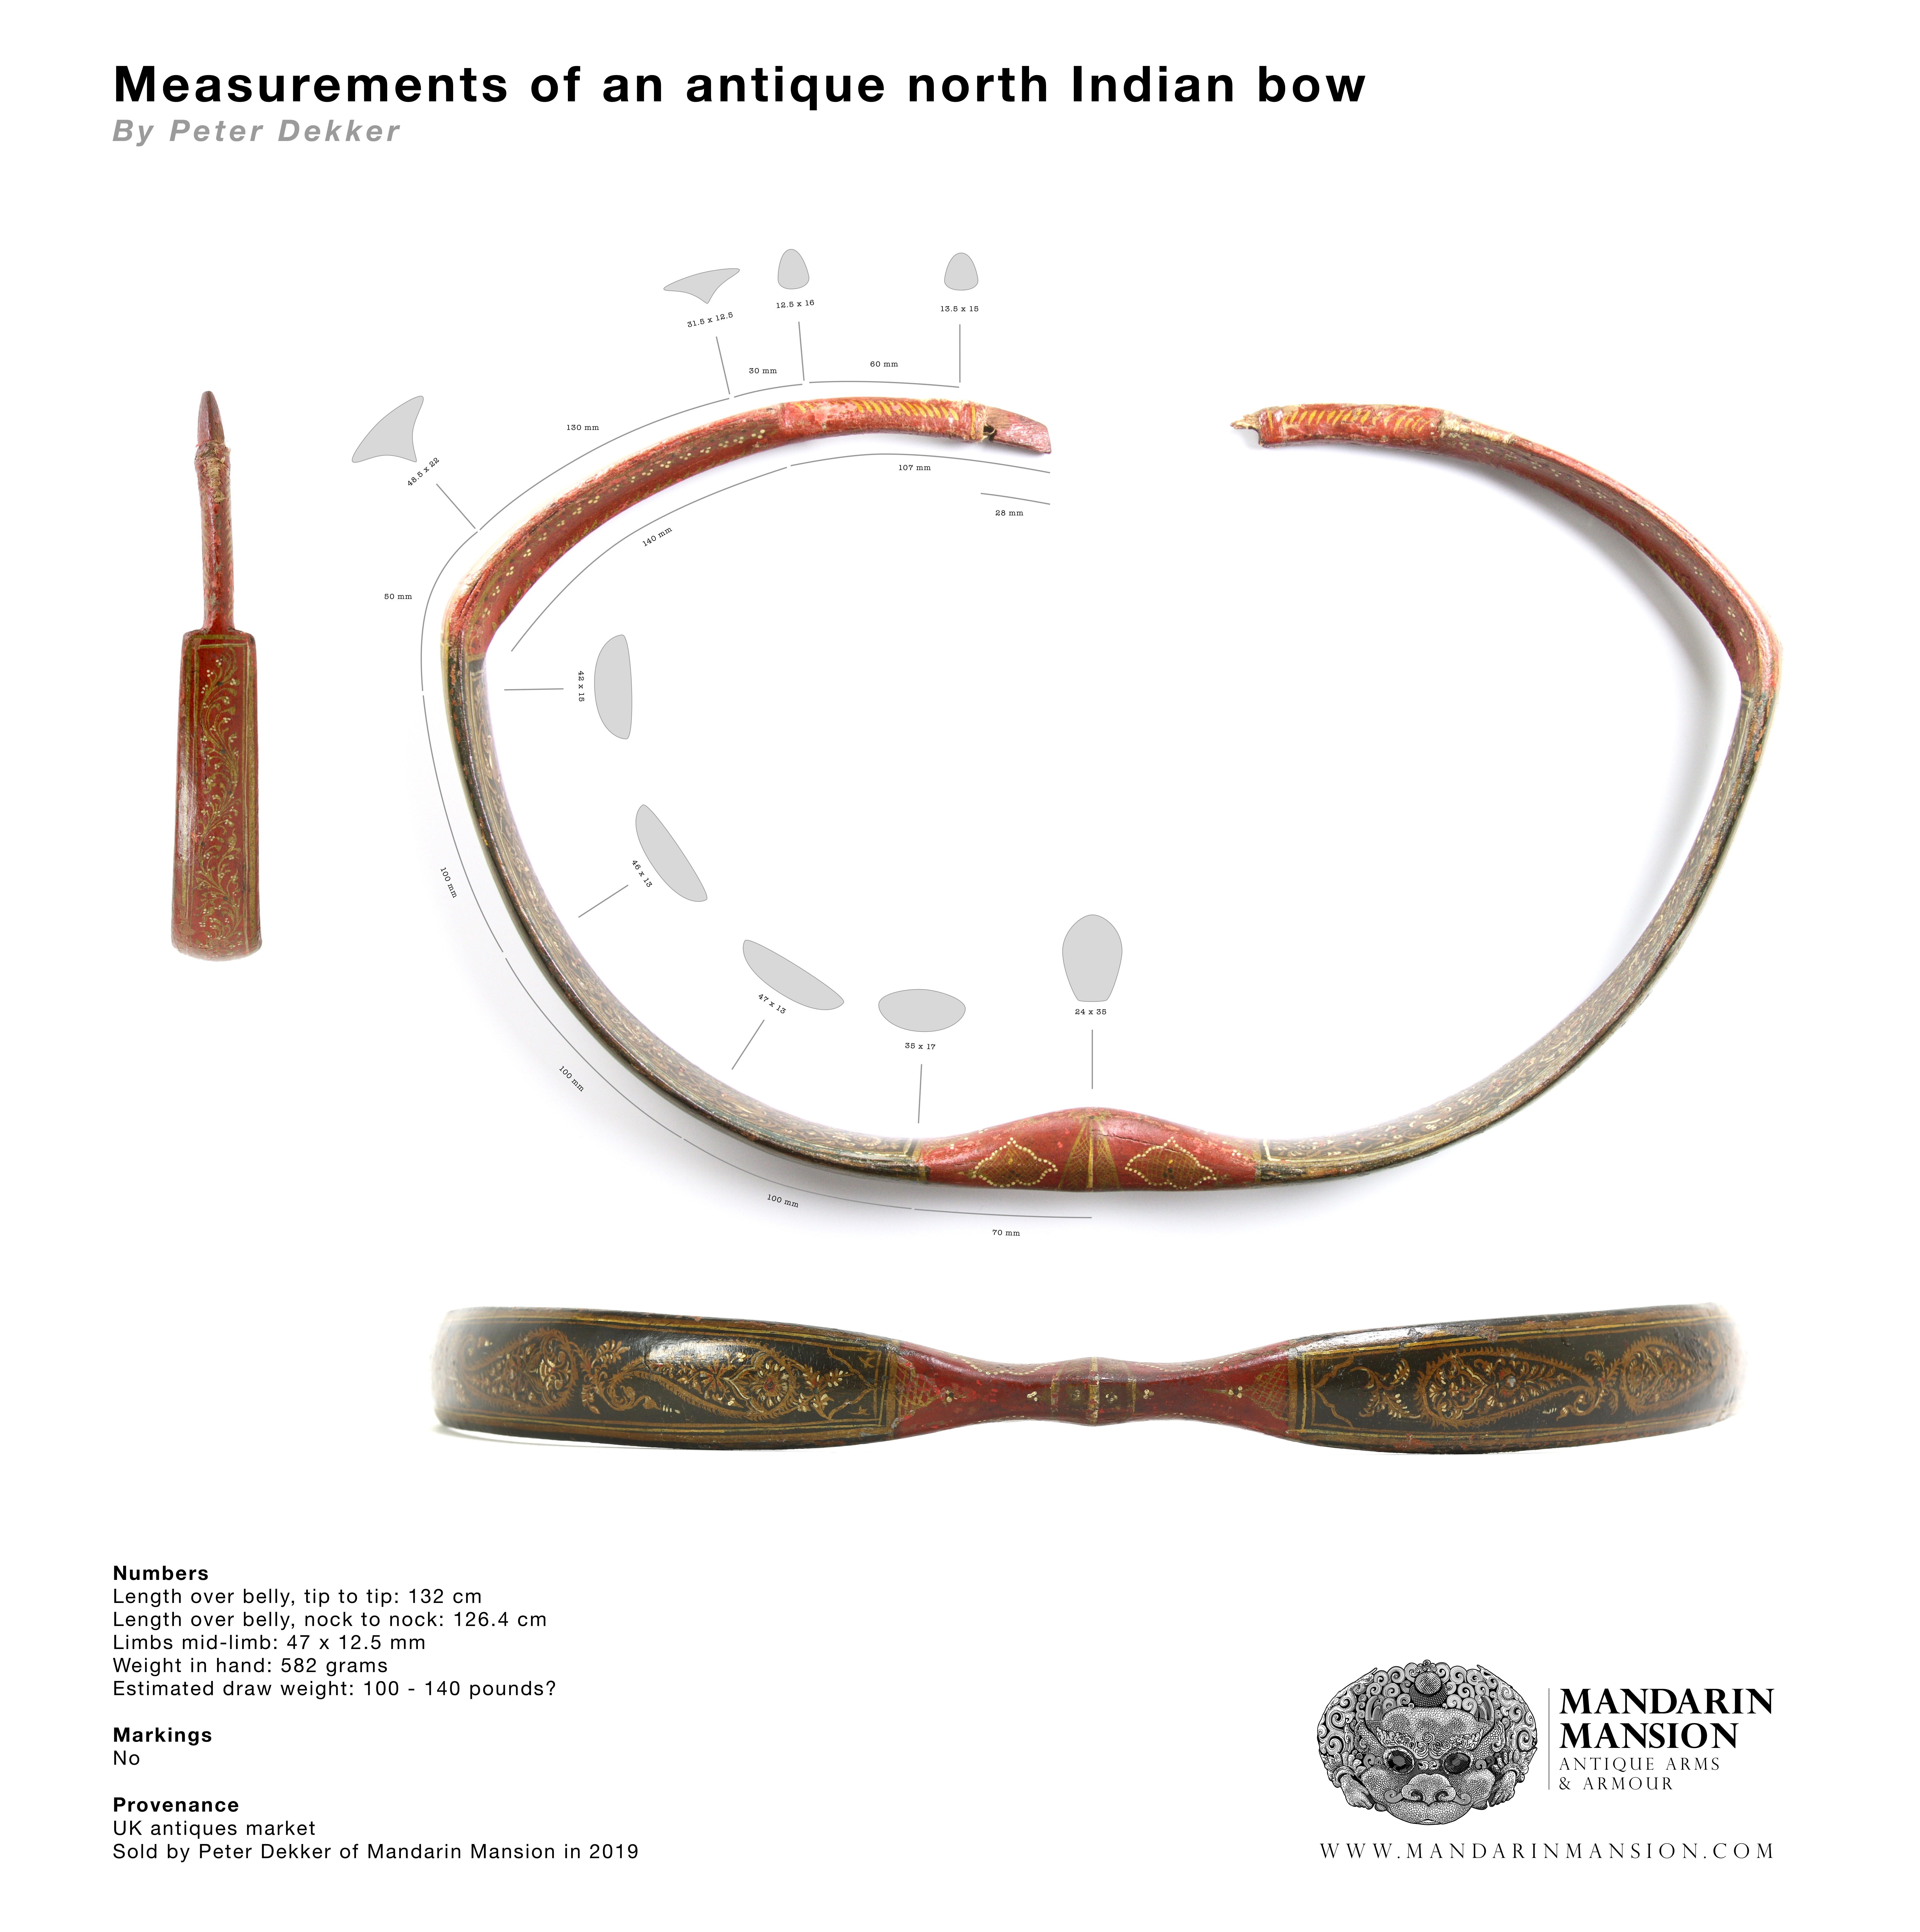 North Indian bow measurements